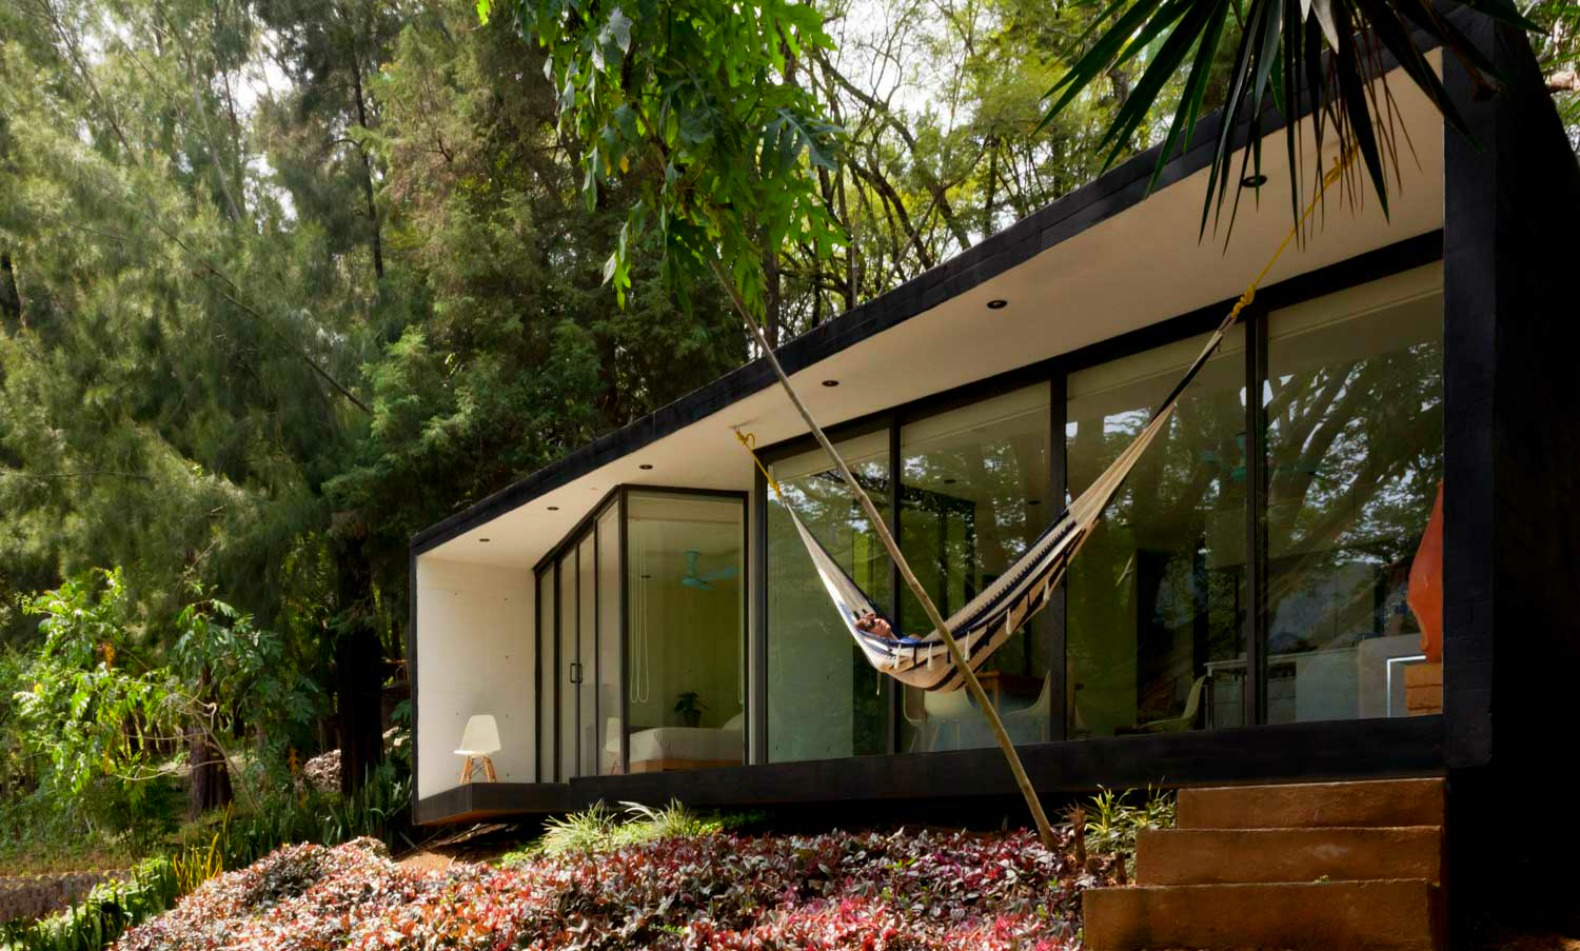 Take refuge in this off grid bungalow tucked into the lush for Bungalow architects